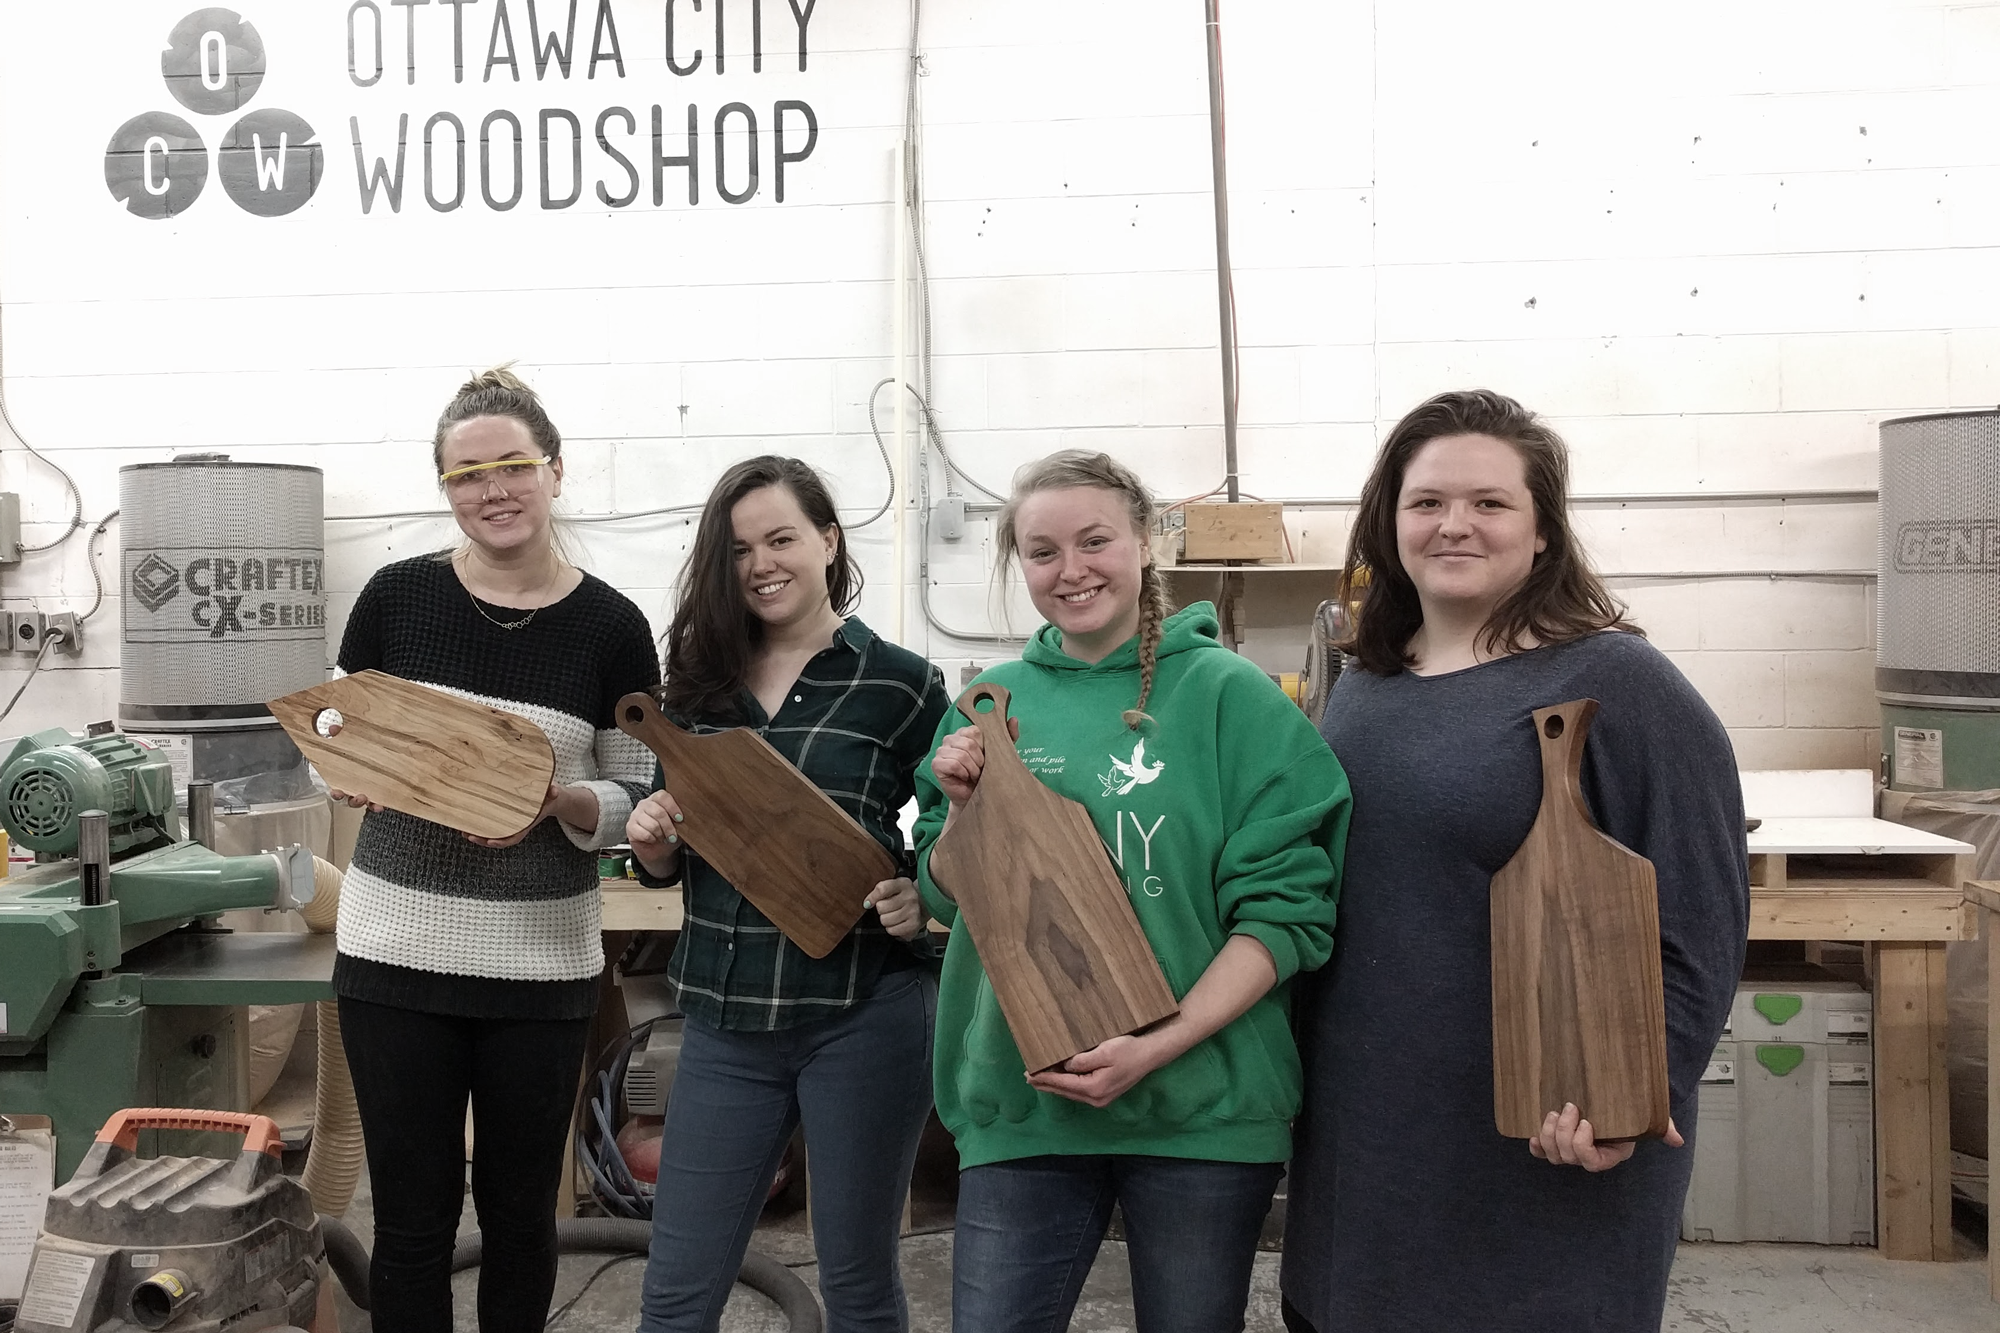 Woodshop Basics (January 23rd 1:30pm - 6:00pm)